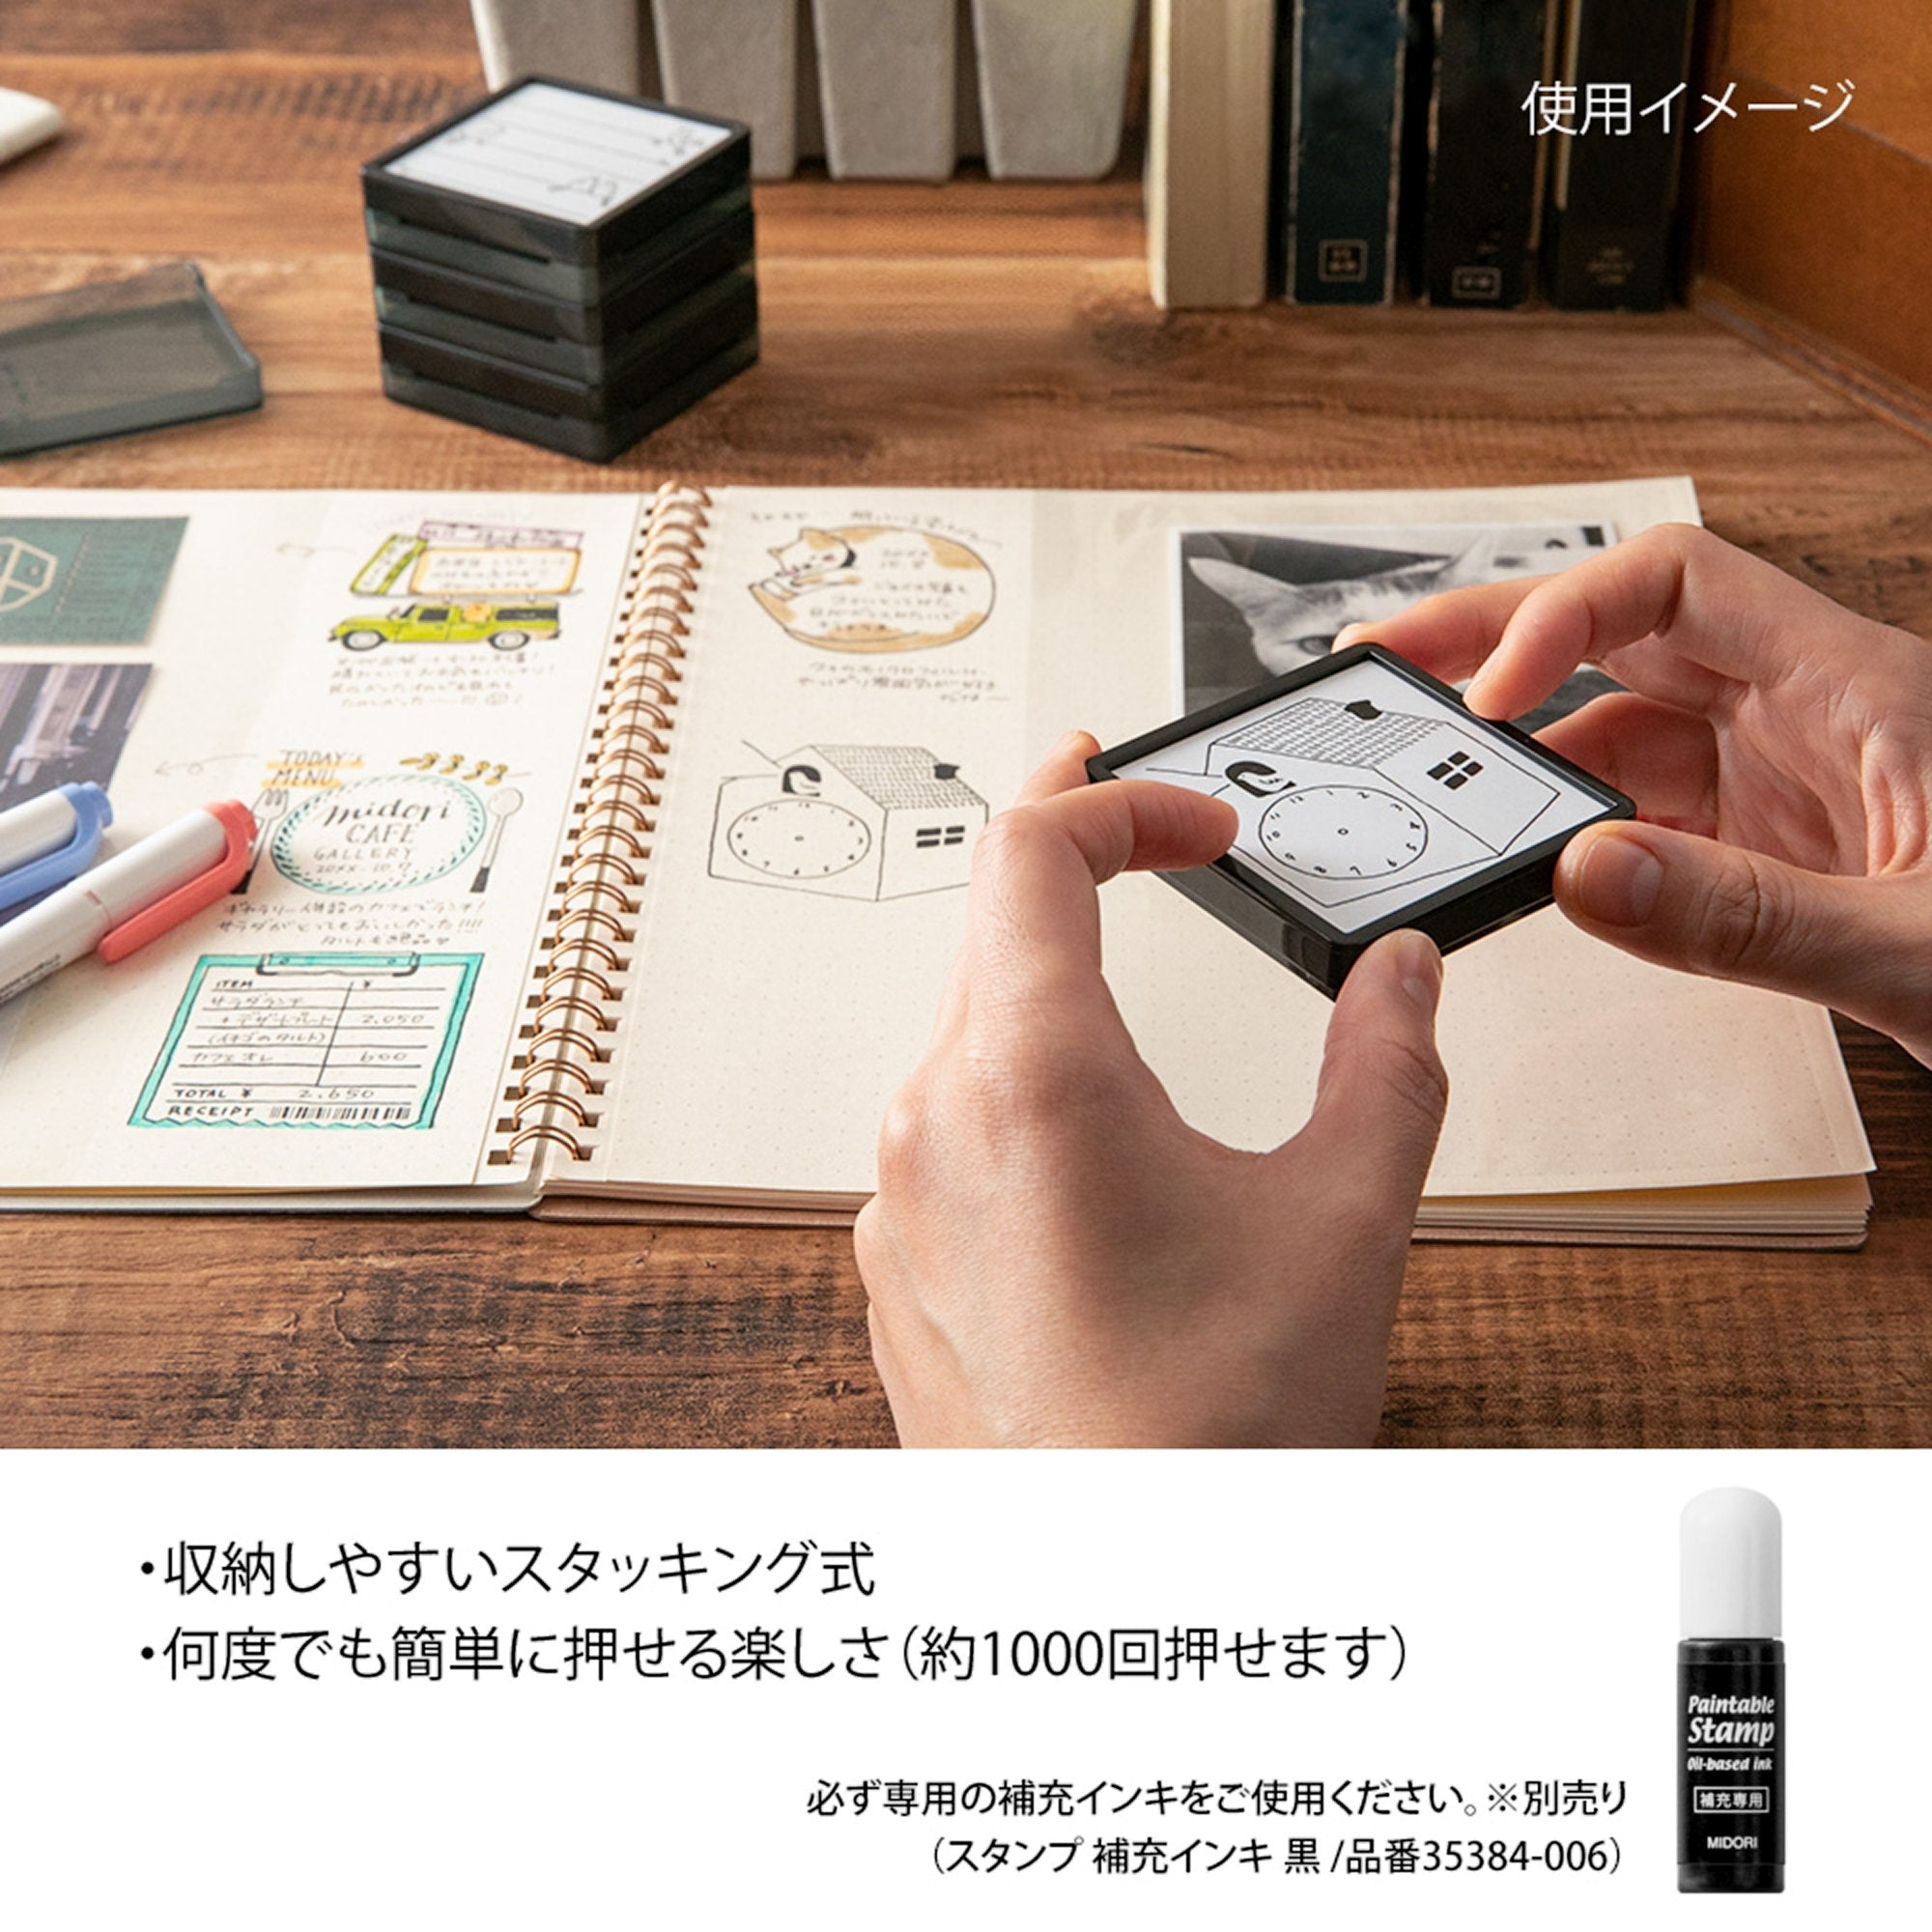 Midori Square Paintable Stamp Re-Inkable Self-Inking Stamp | CALENDAR Green Package - The Stationery Life!